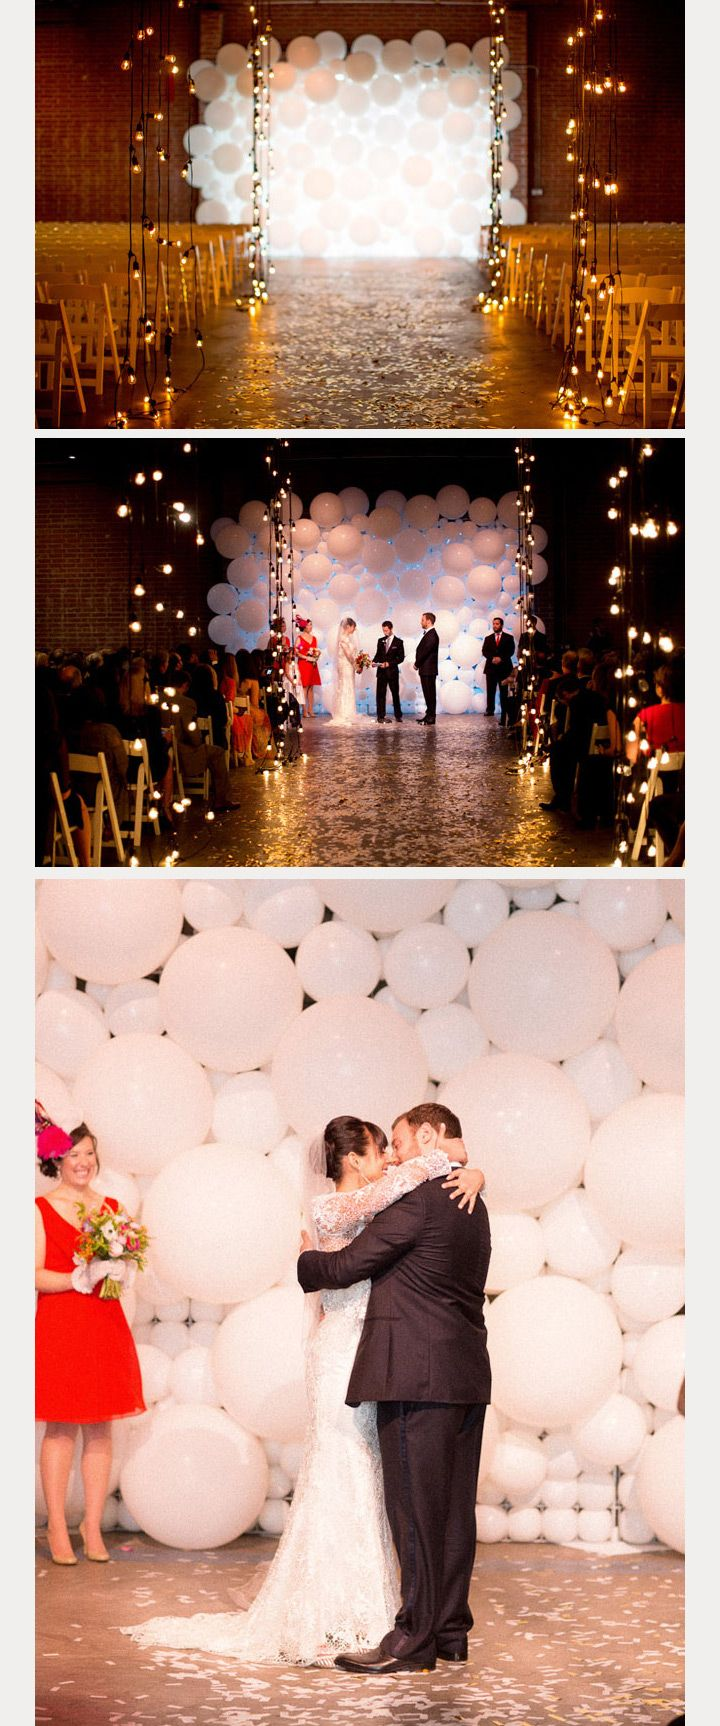 Wall Decoration For Engagement : Best ideas about wedding balloon decorations on